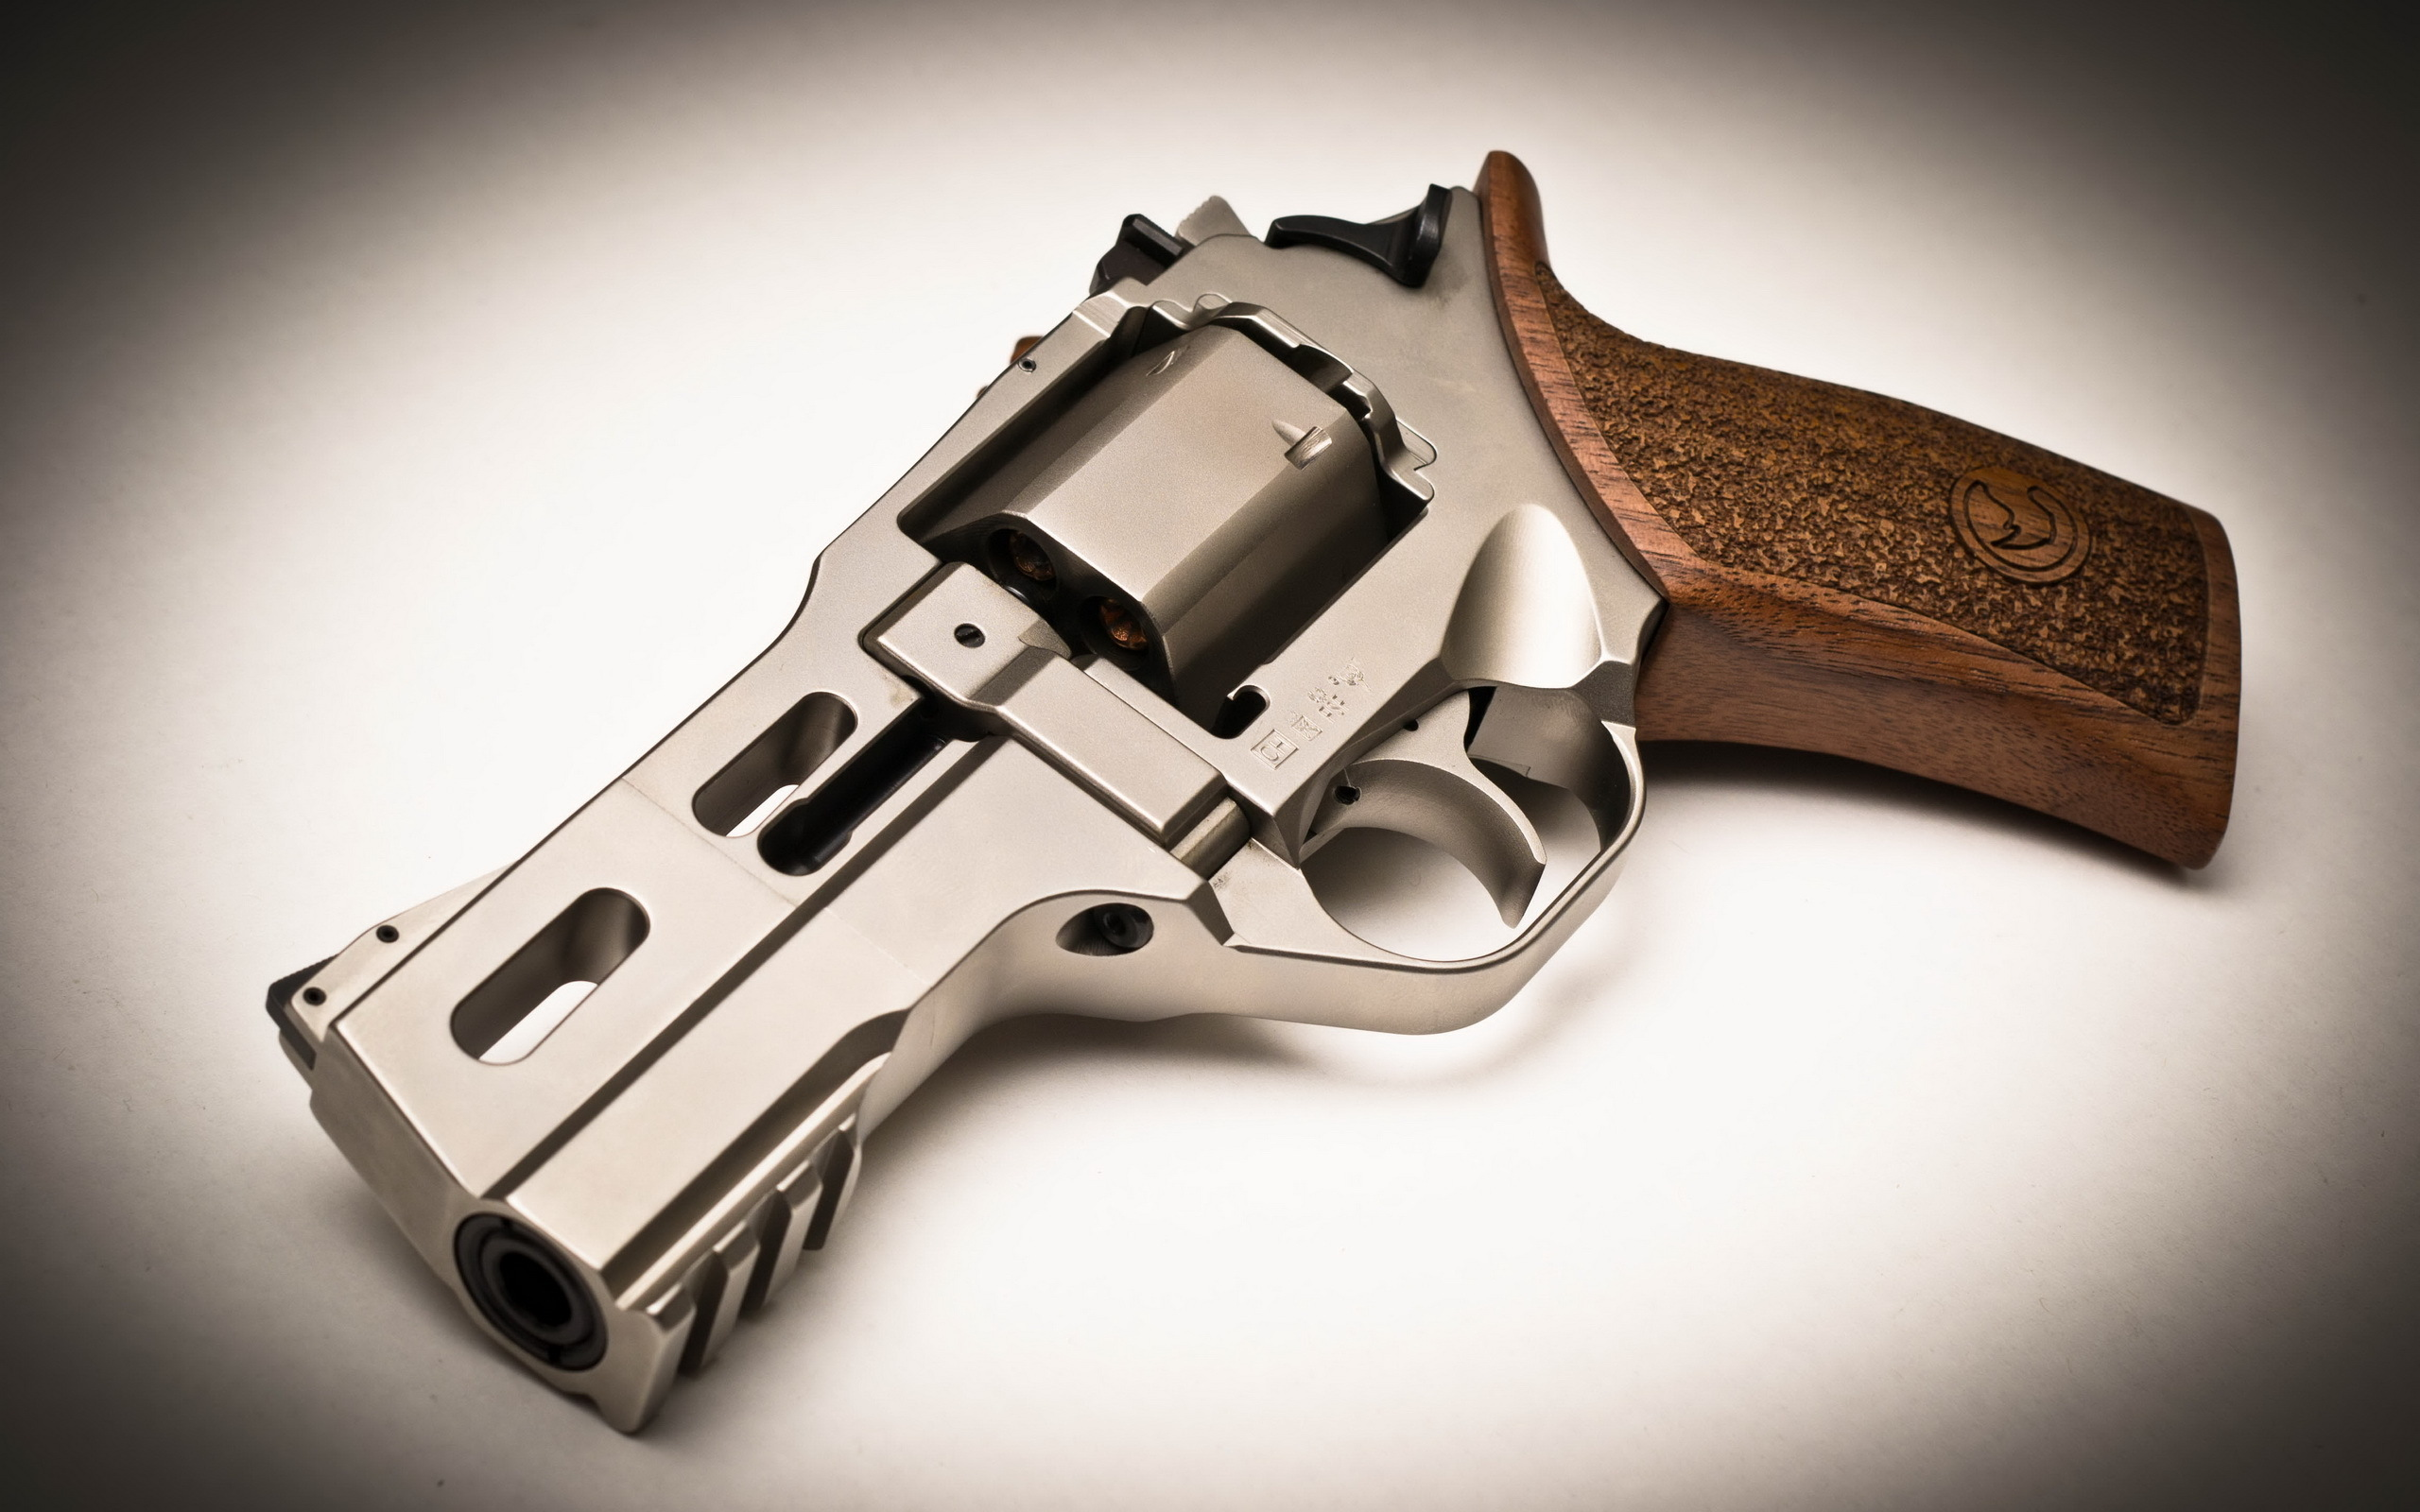 Chiappa Rhino Revolver Backgrounds on Wallpapers Vista